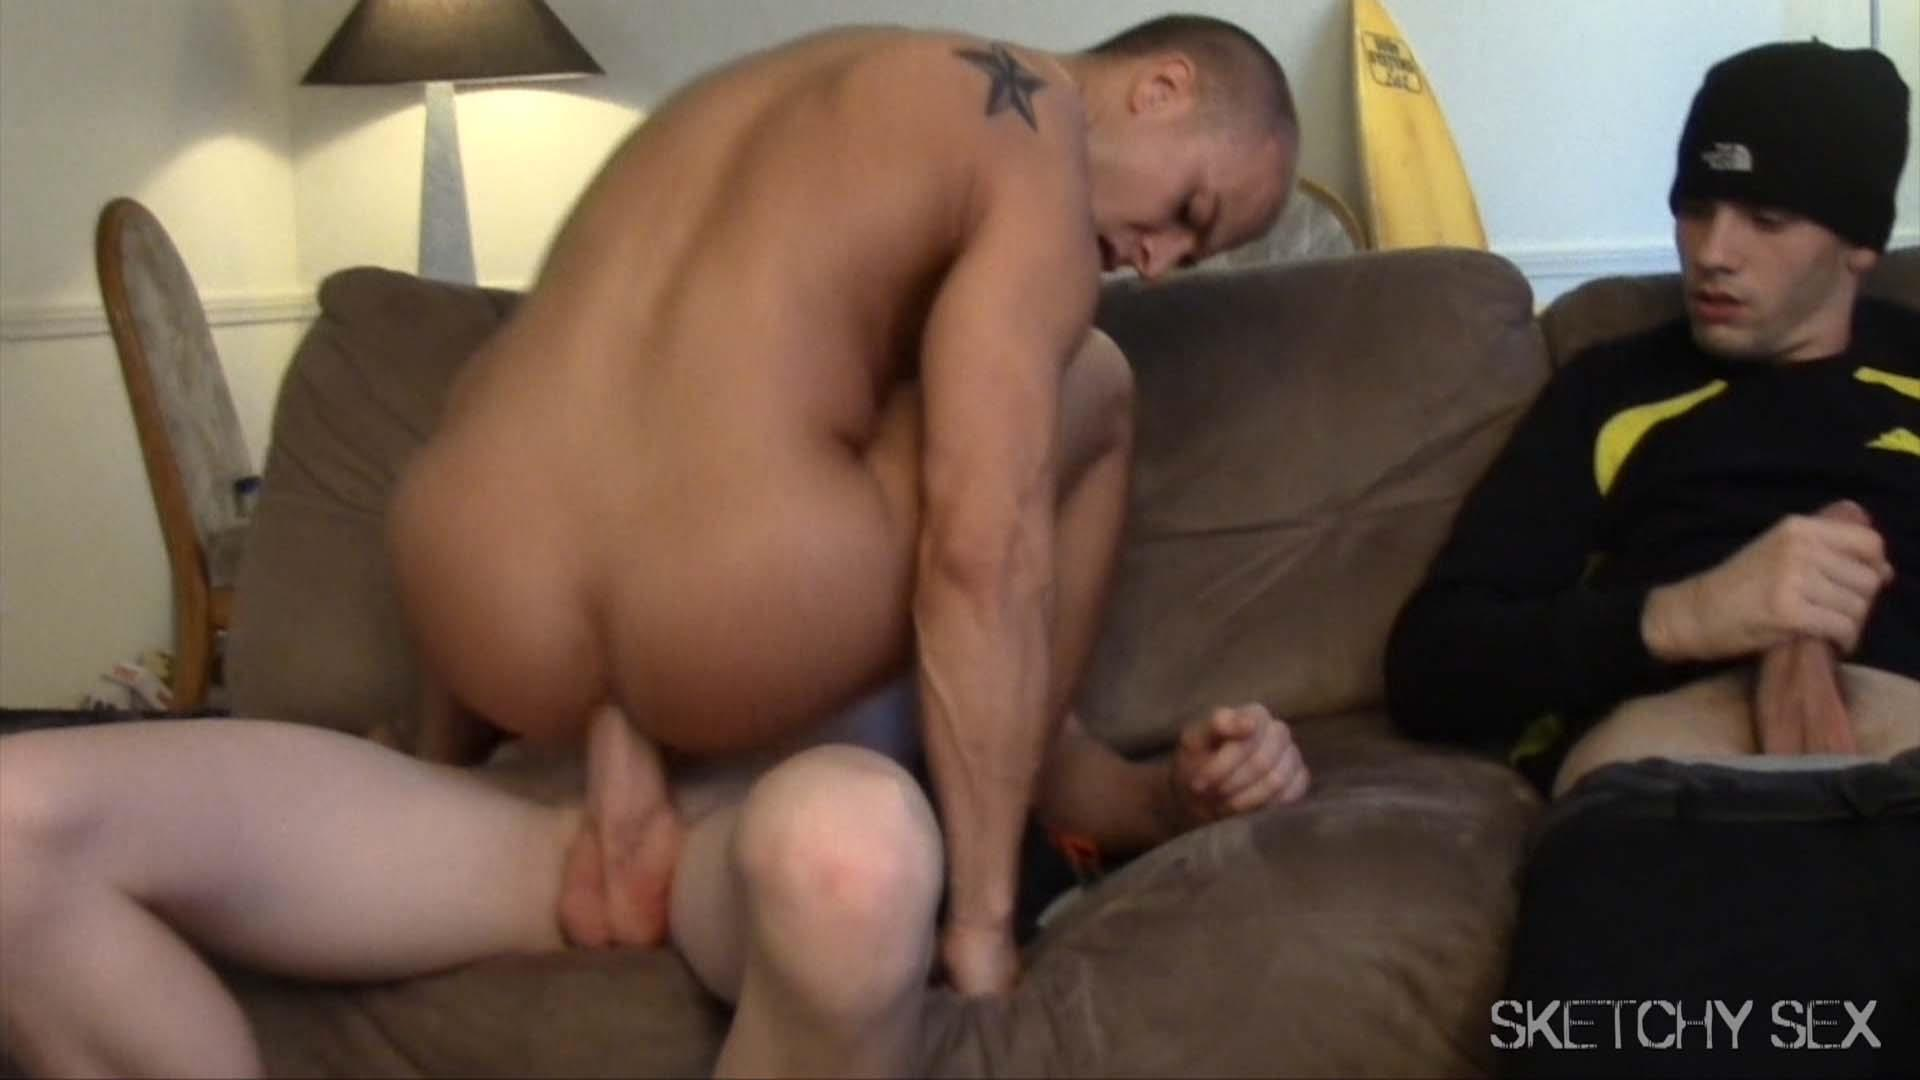 amateur gay porn tube sites